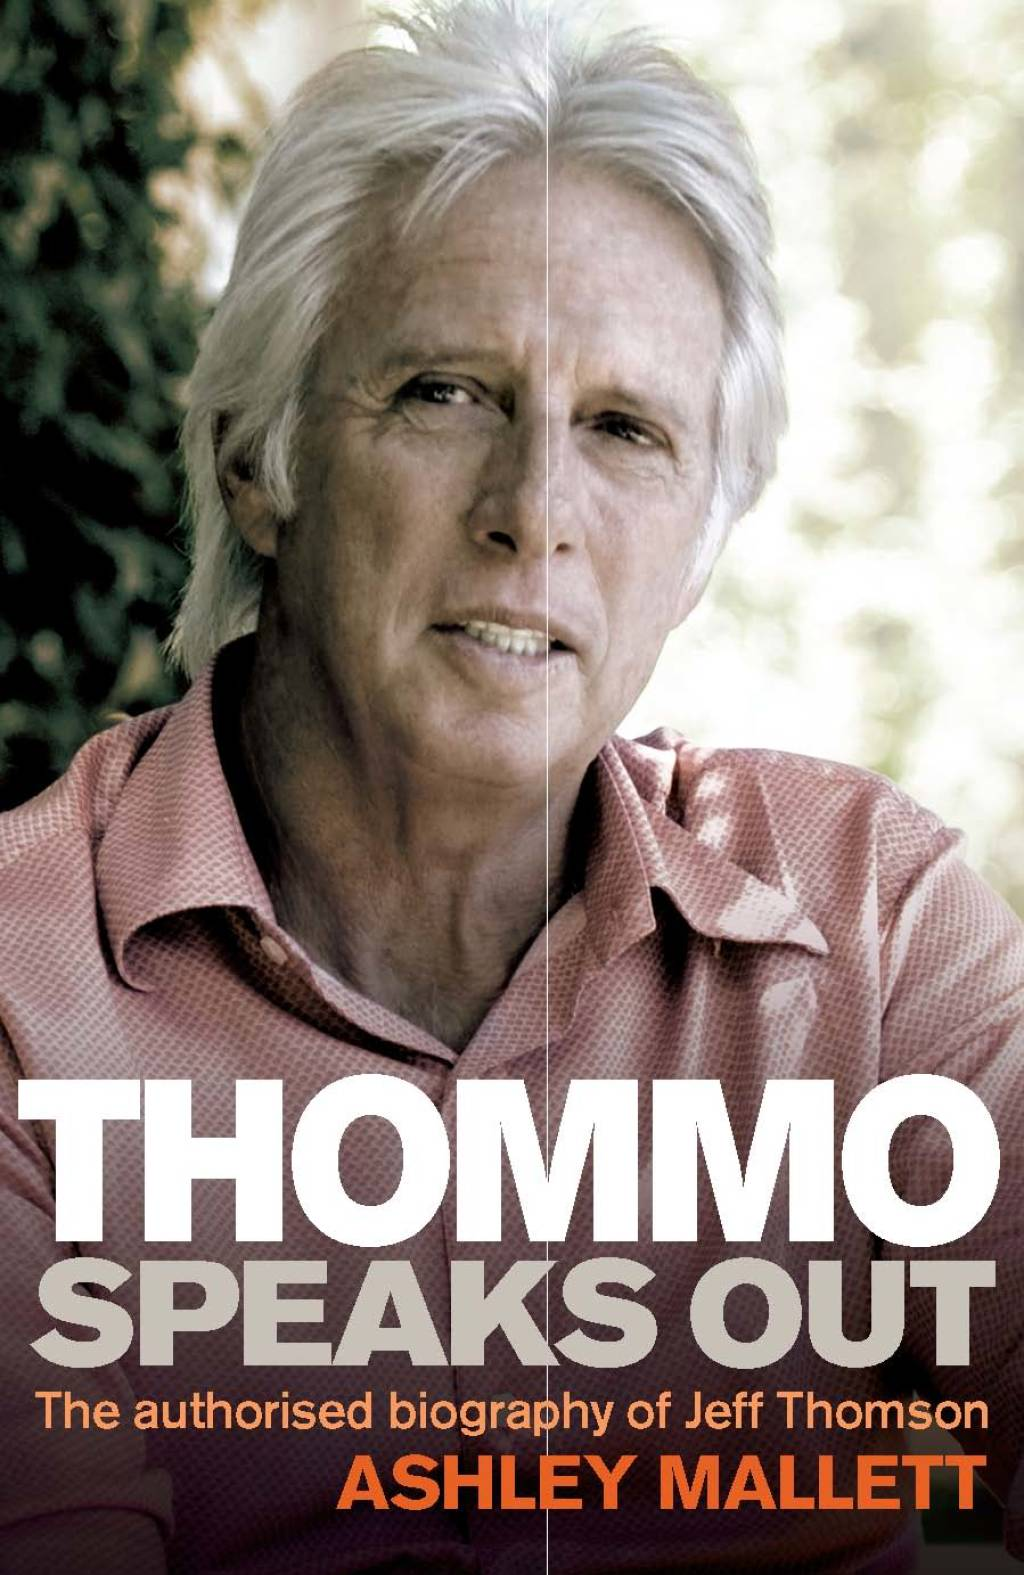 Thommo Speaks Out (eBook)